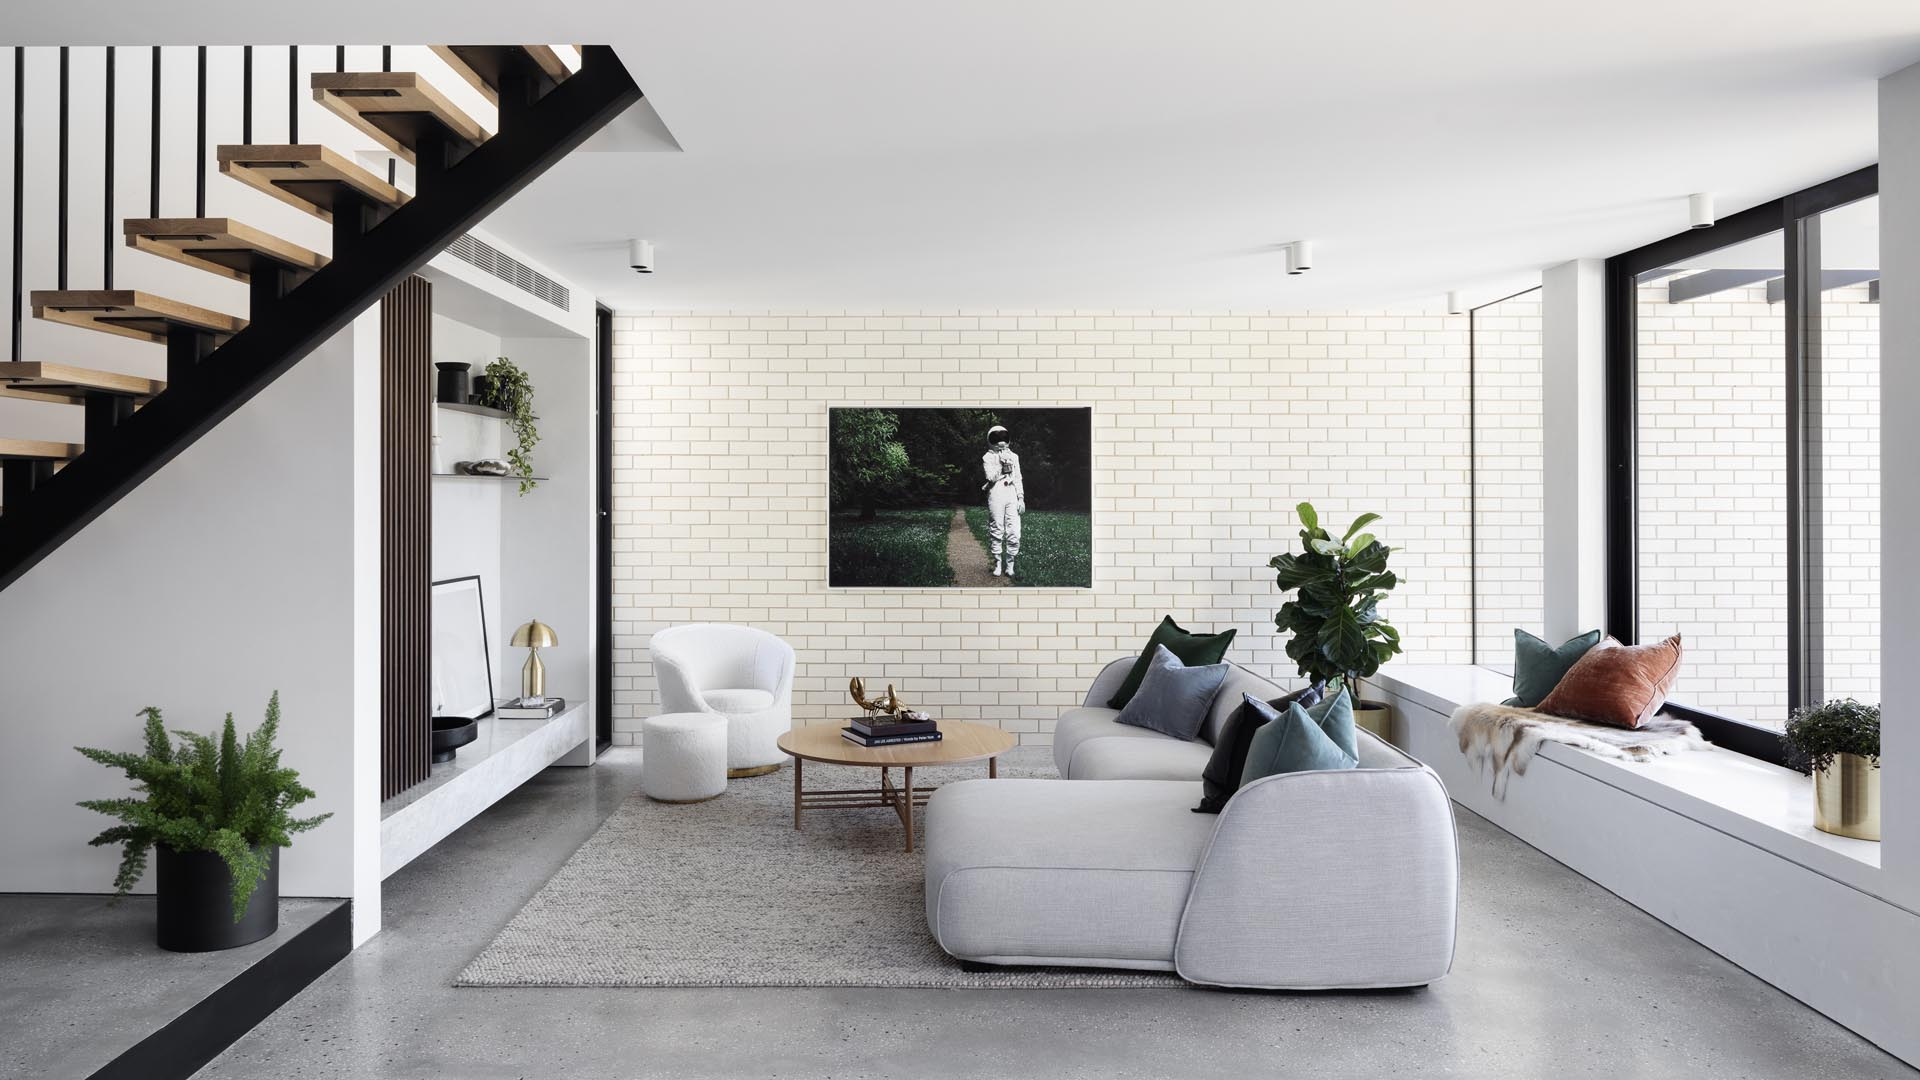 A modern white living room with a brick accent wall and built-in window bench.